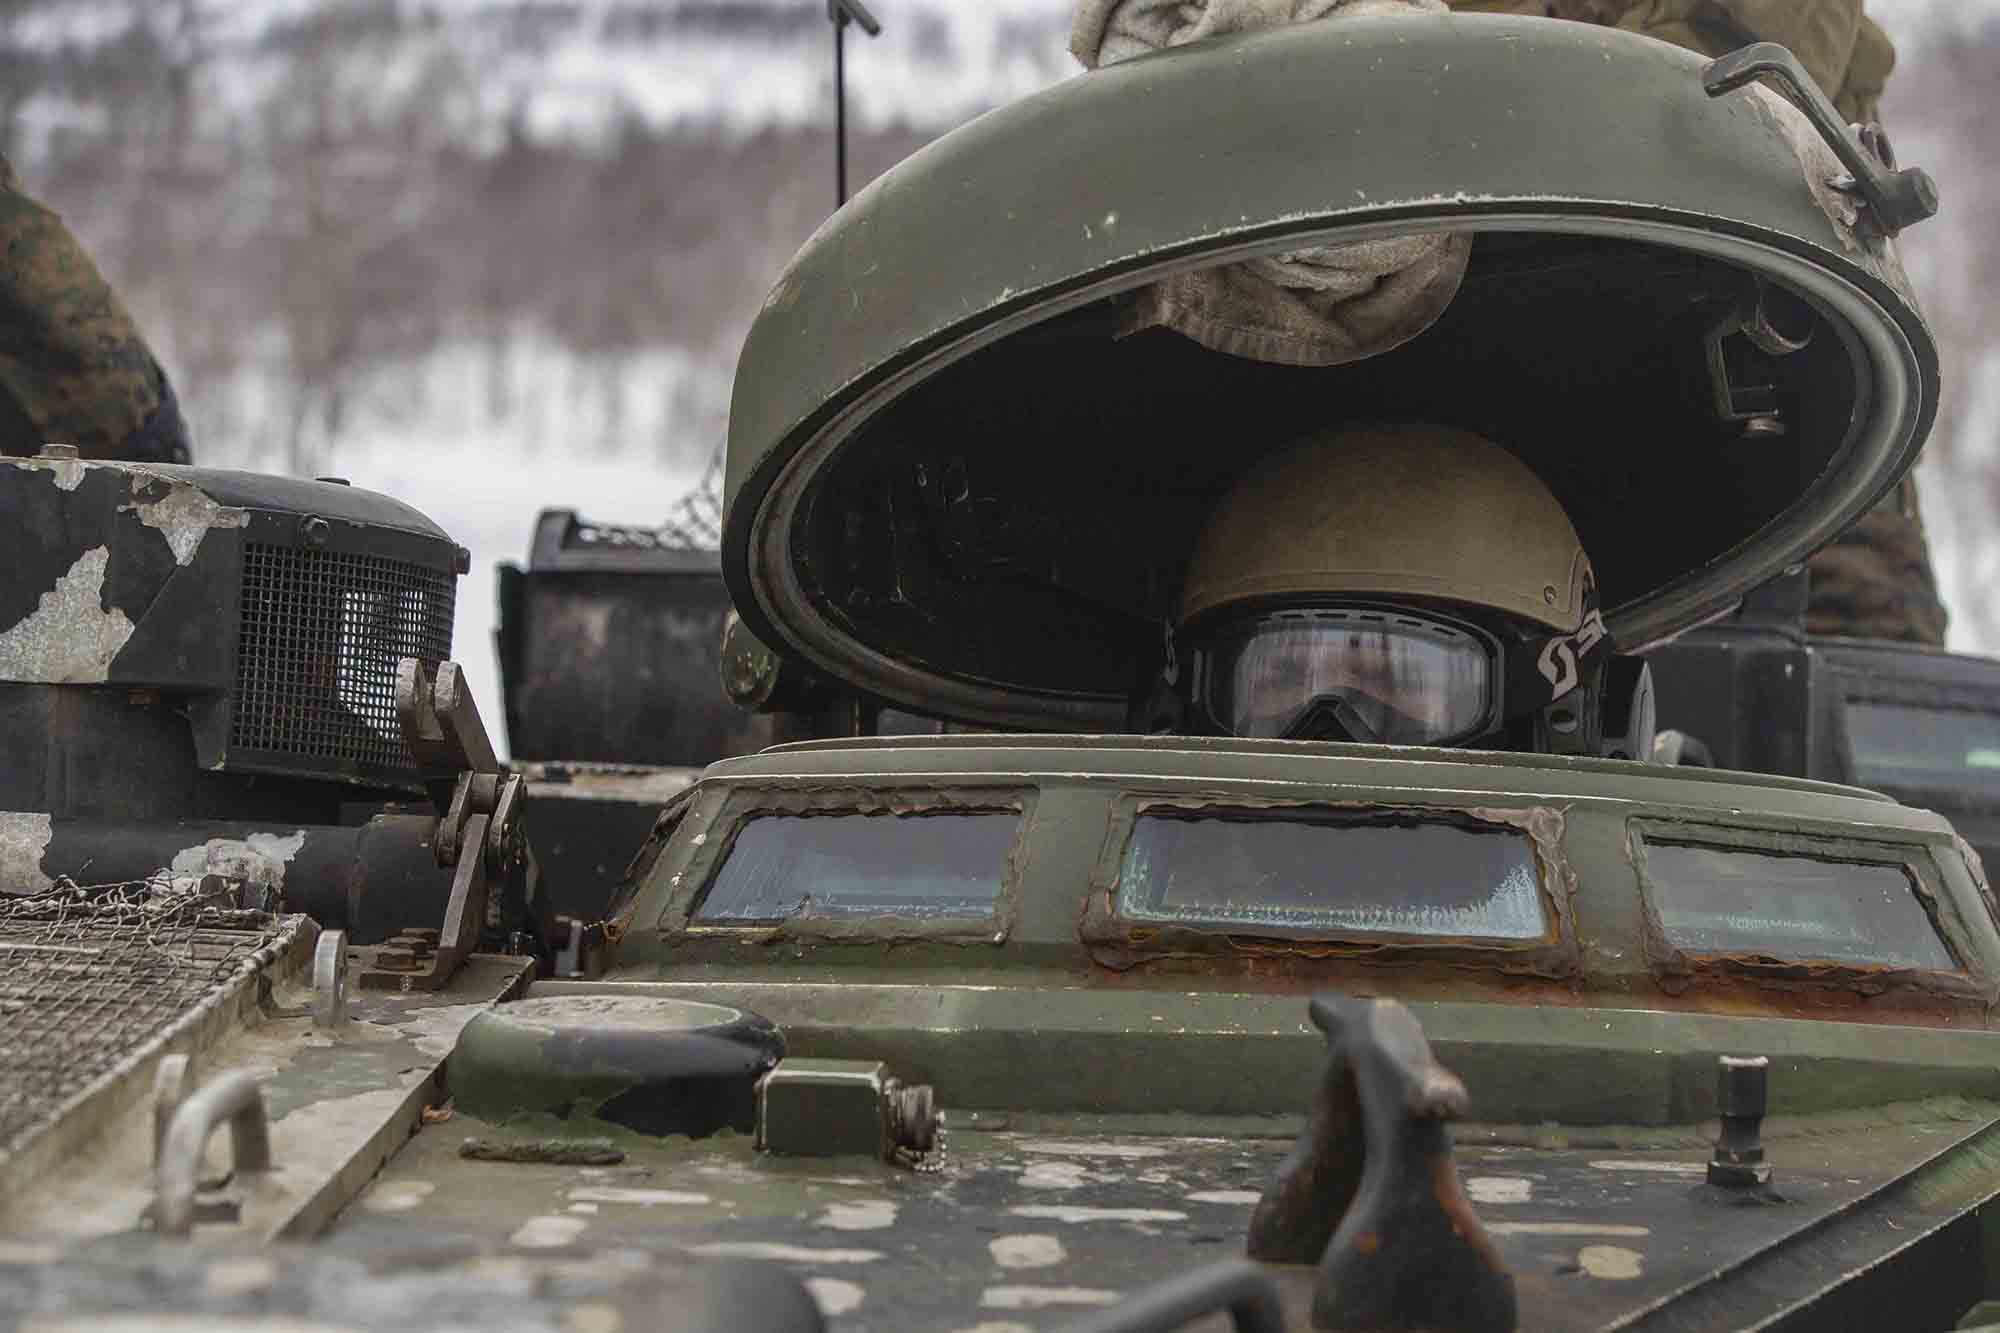 Marines with Marine Rotational Force Europe 21.1 (MRF-E), Marine Forces Europe and Africa, prepare to conduct a live-fire range using Assault Amphibious Vehicles (AAV) in Blatindan, Norway, March 16, 2021. (Cpl. Jesse Carter-Powell/Marine Corps)